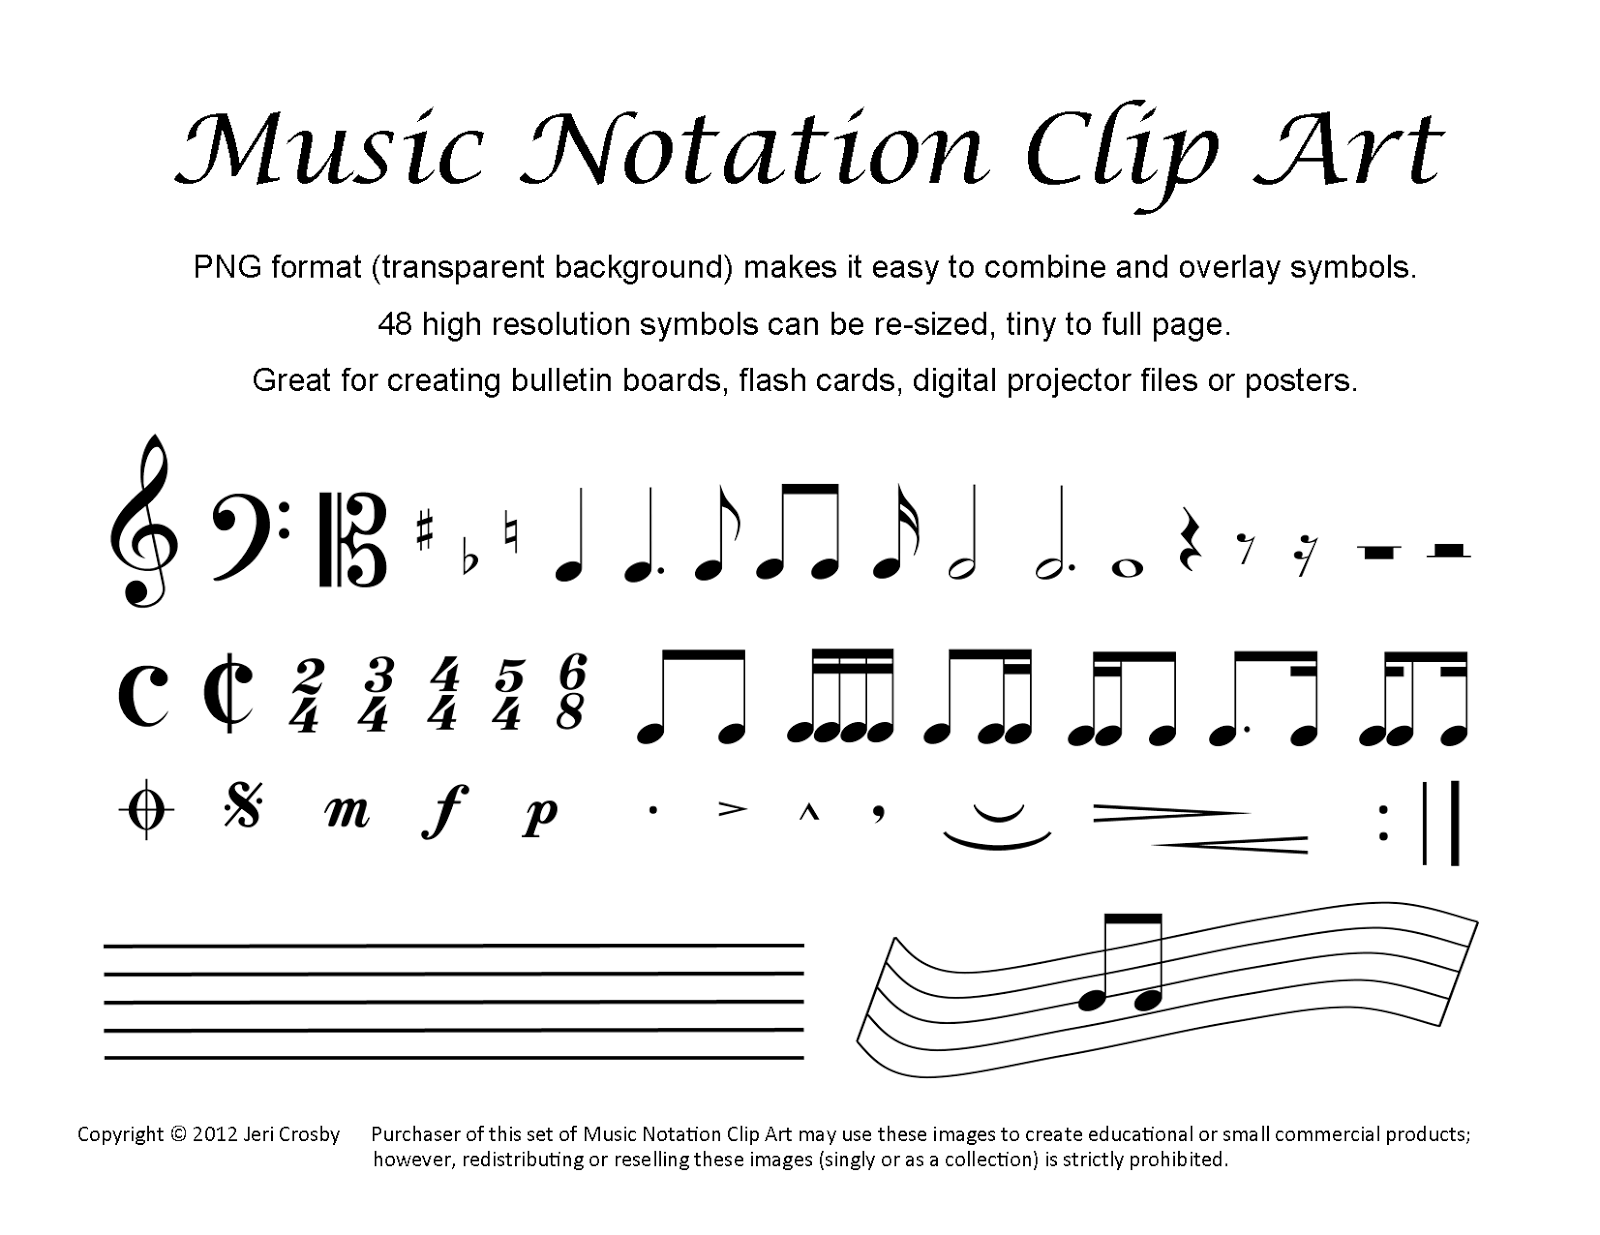 Mymusicalmagic music notation solutions note able font for Virb templates